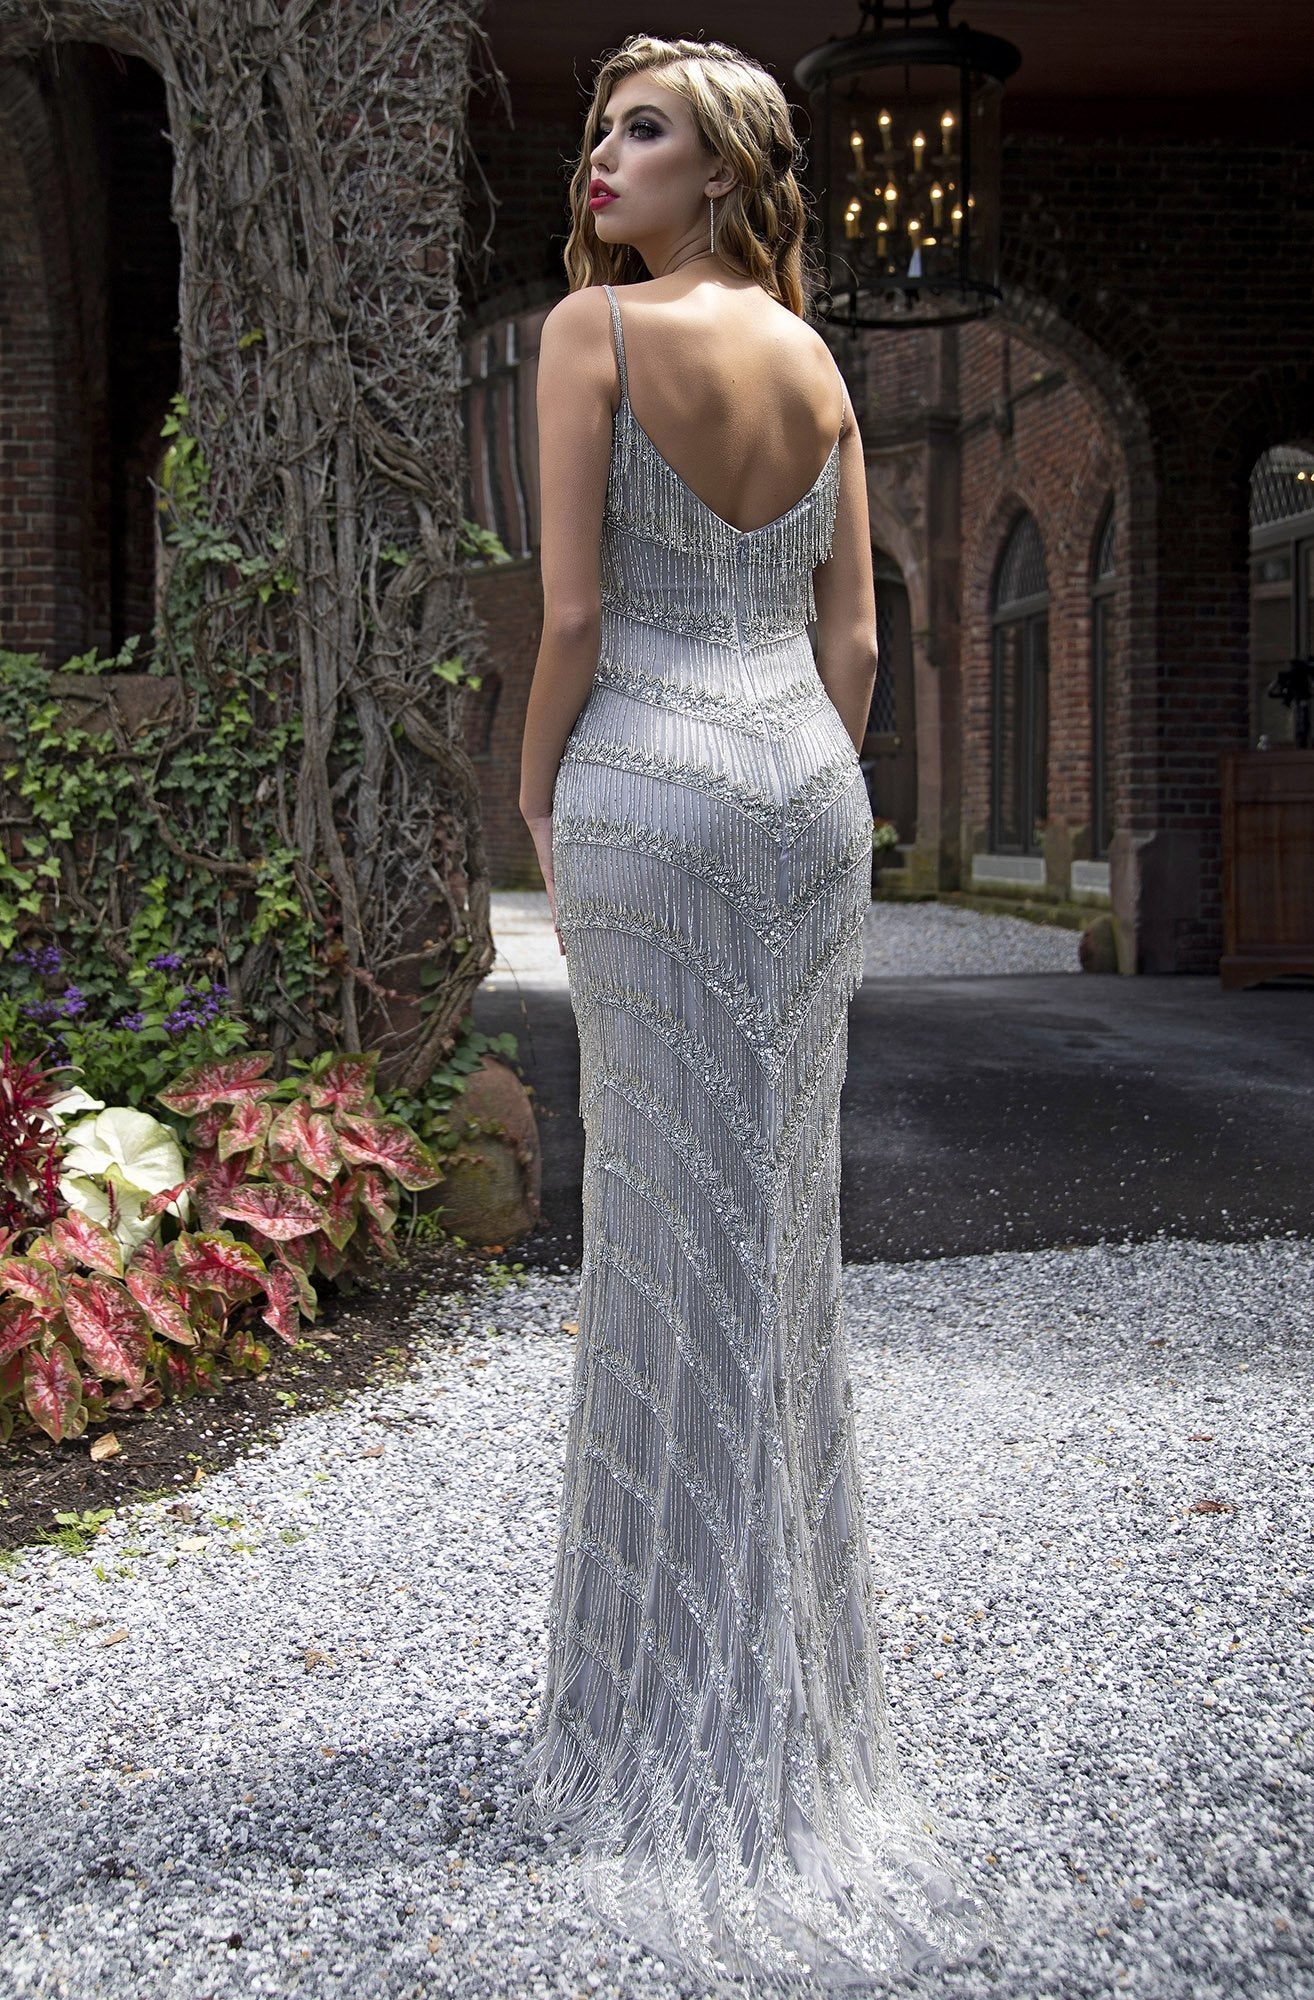 Primavera Couture - 3174 Fringed V-Neck Sheath Evening Gown In Gray